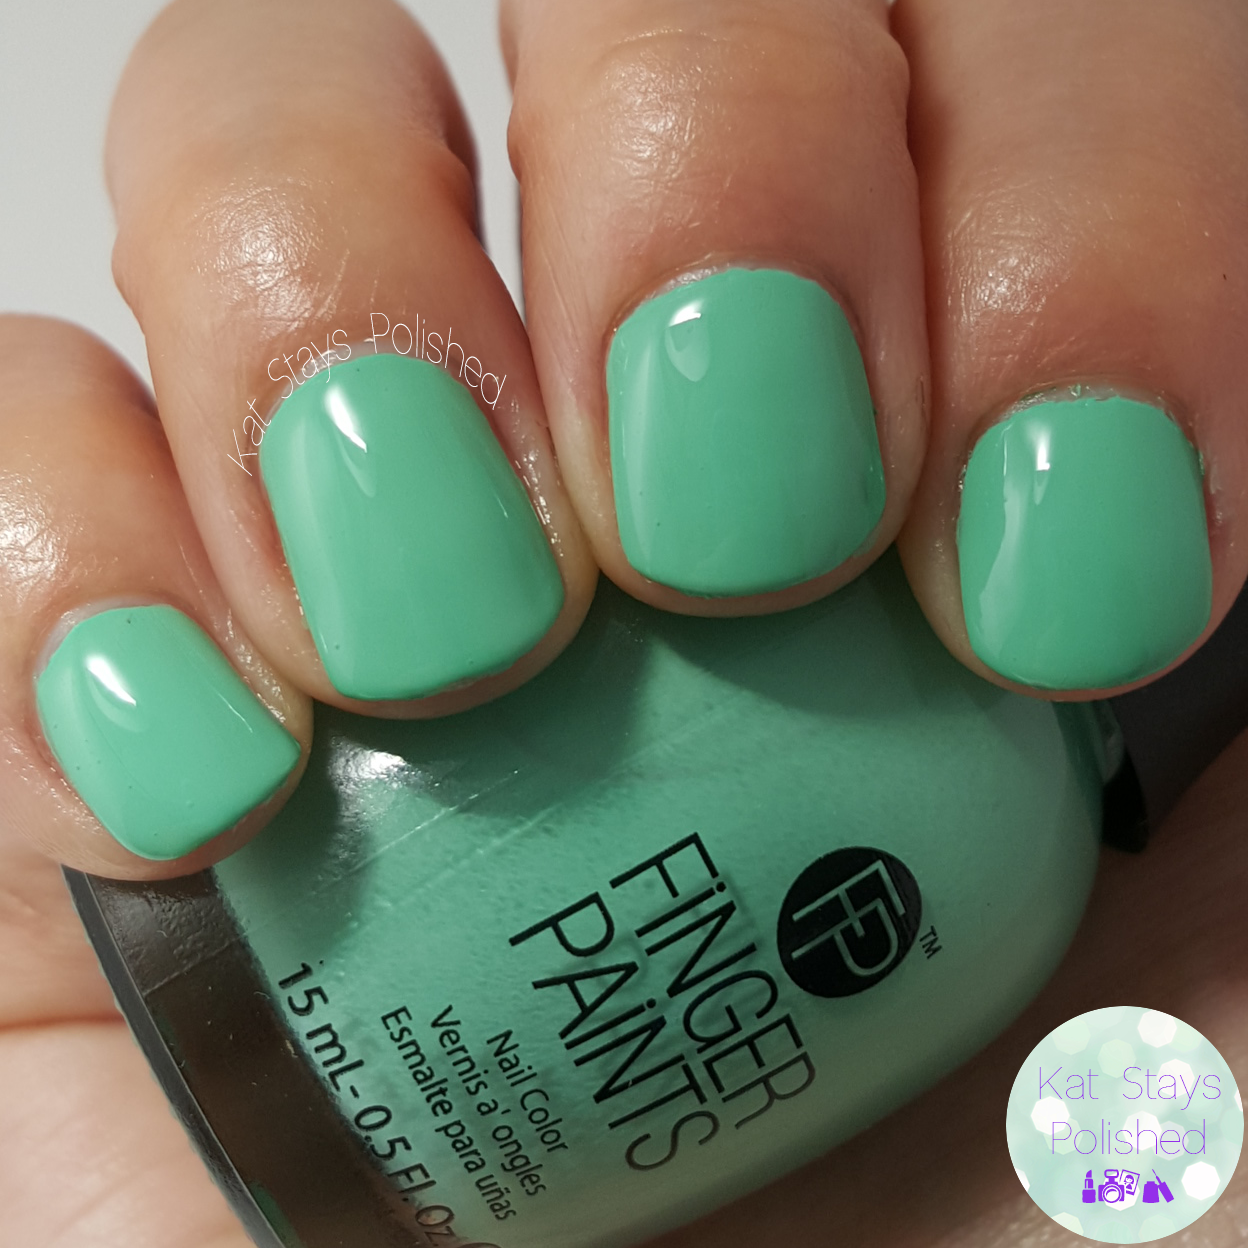 Kat Stays Polished | Beauty Blog with a Dash of Life: FingerPaints ...